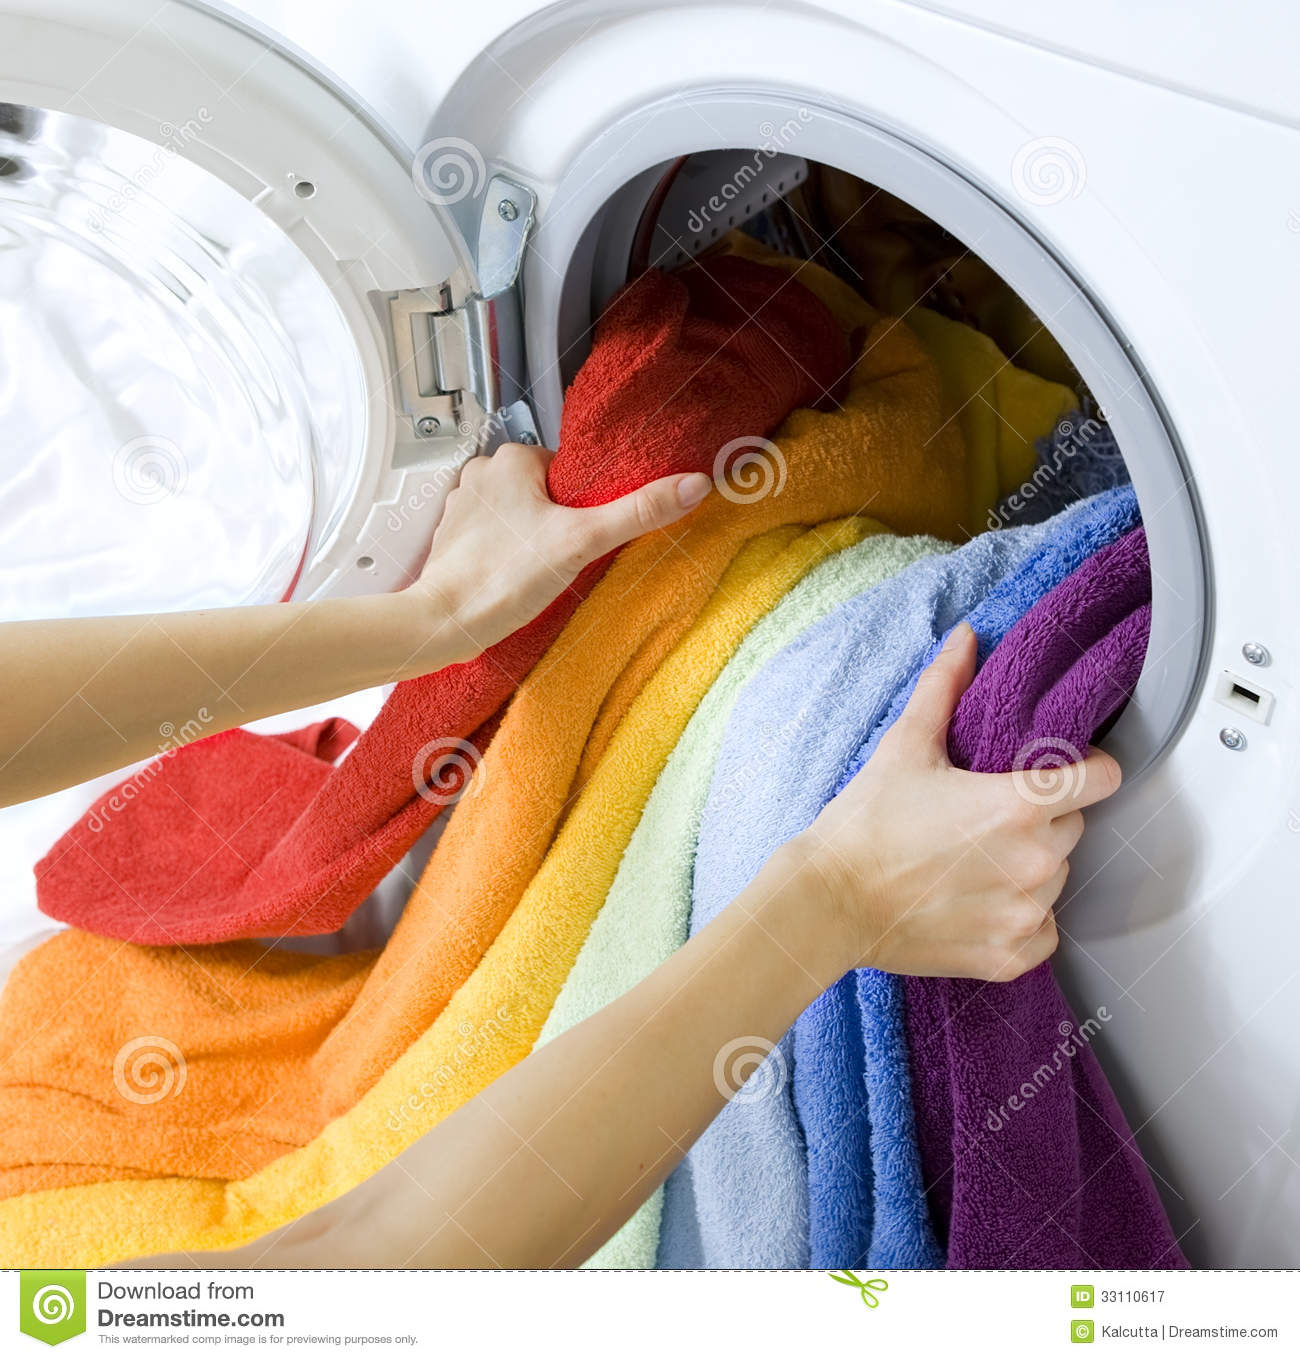 Washing colored clothes 28 images colored washed clothes in a basket and washing machine - Protect clothes colors washing ...